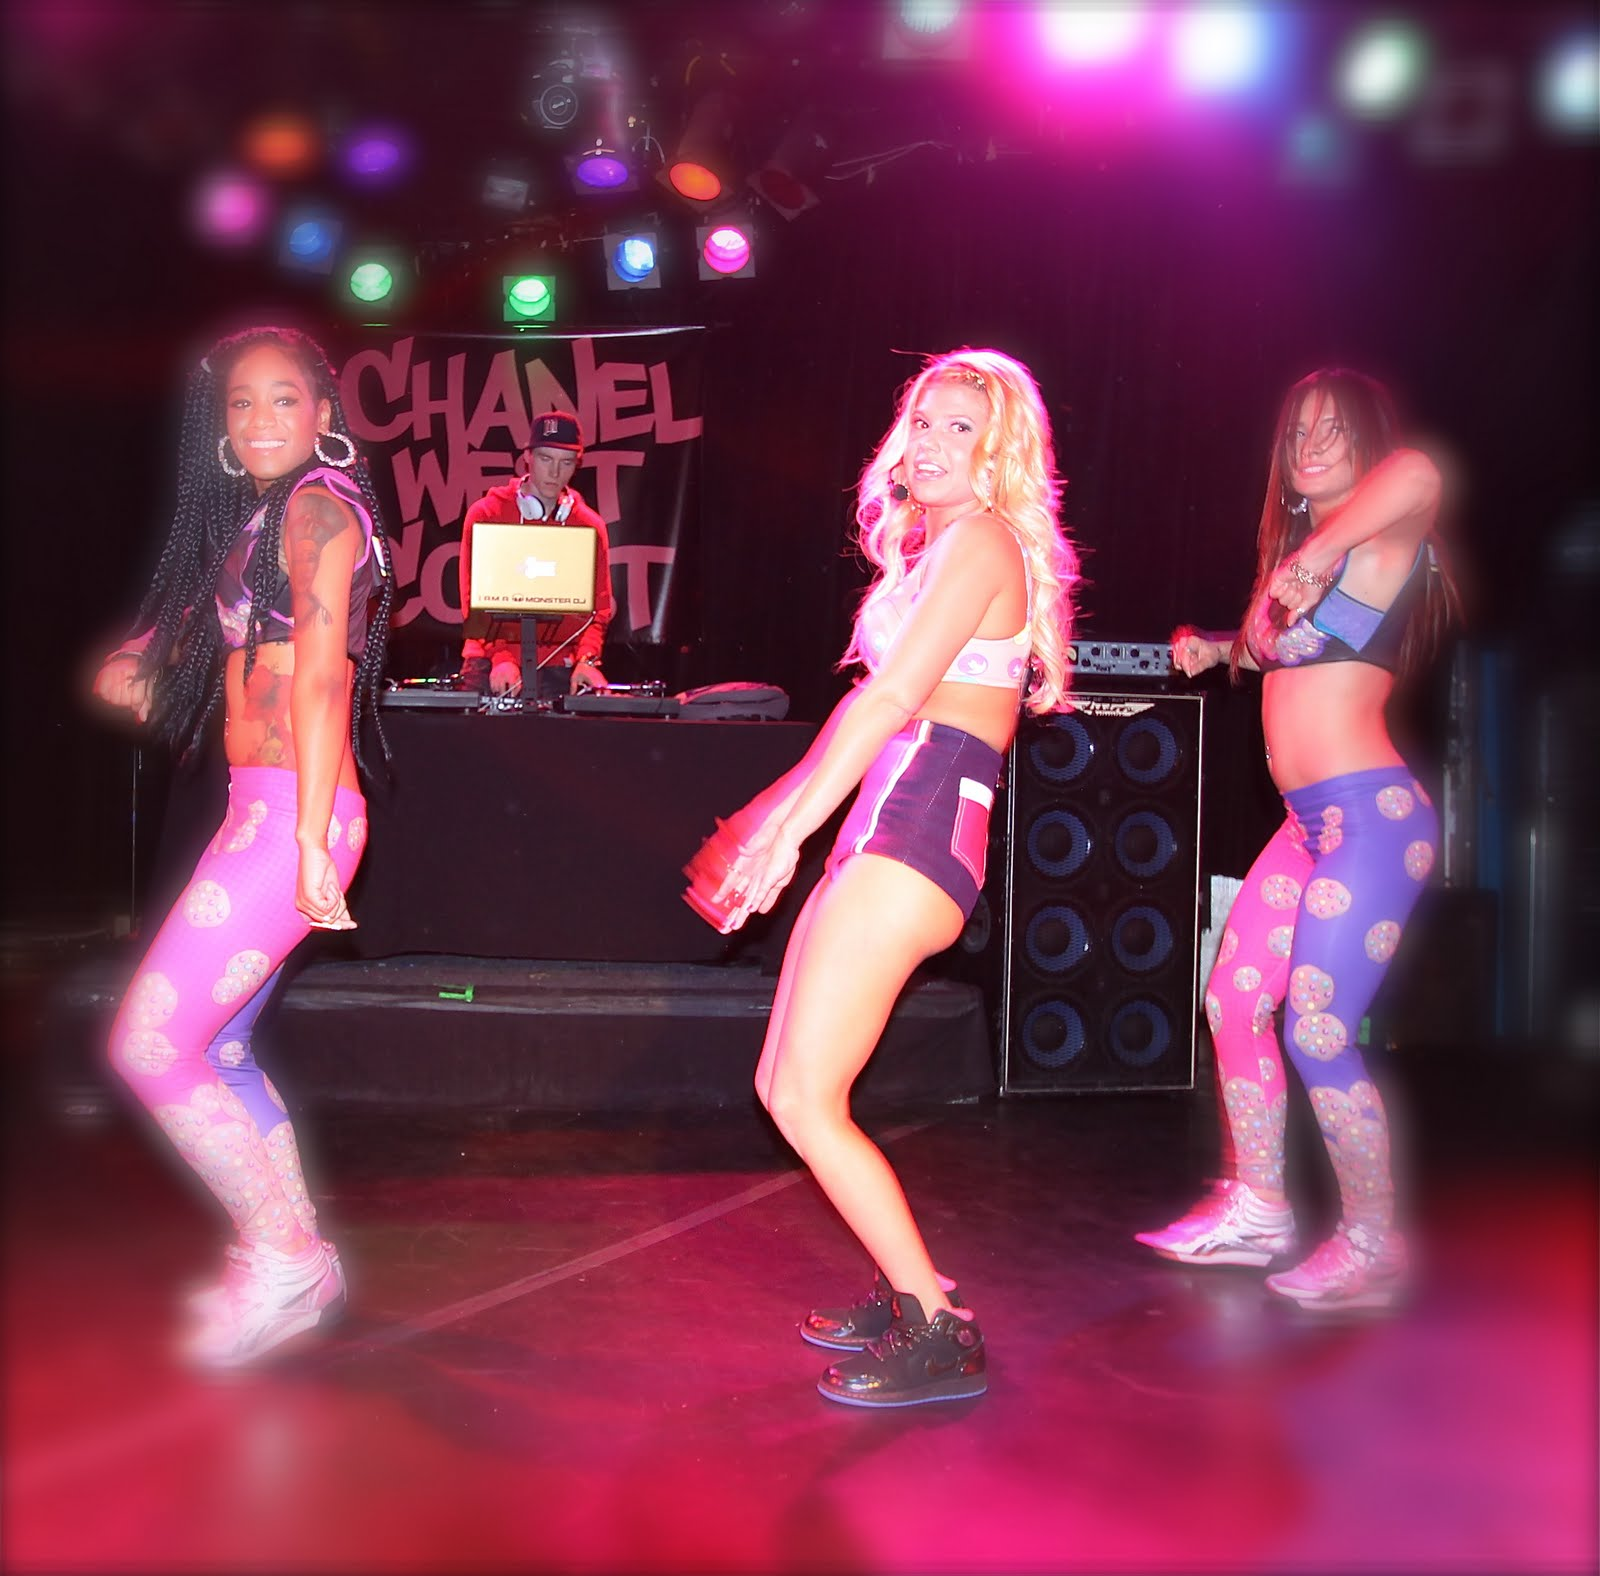 Chanel West Coast @ The Roxy January 8th. 2012